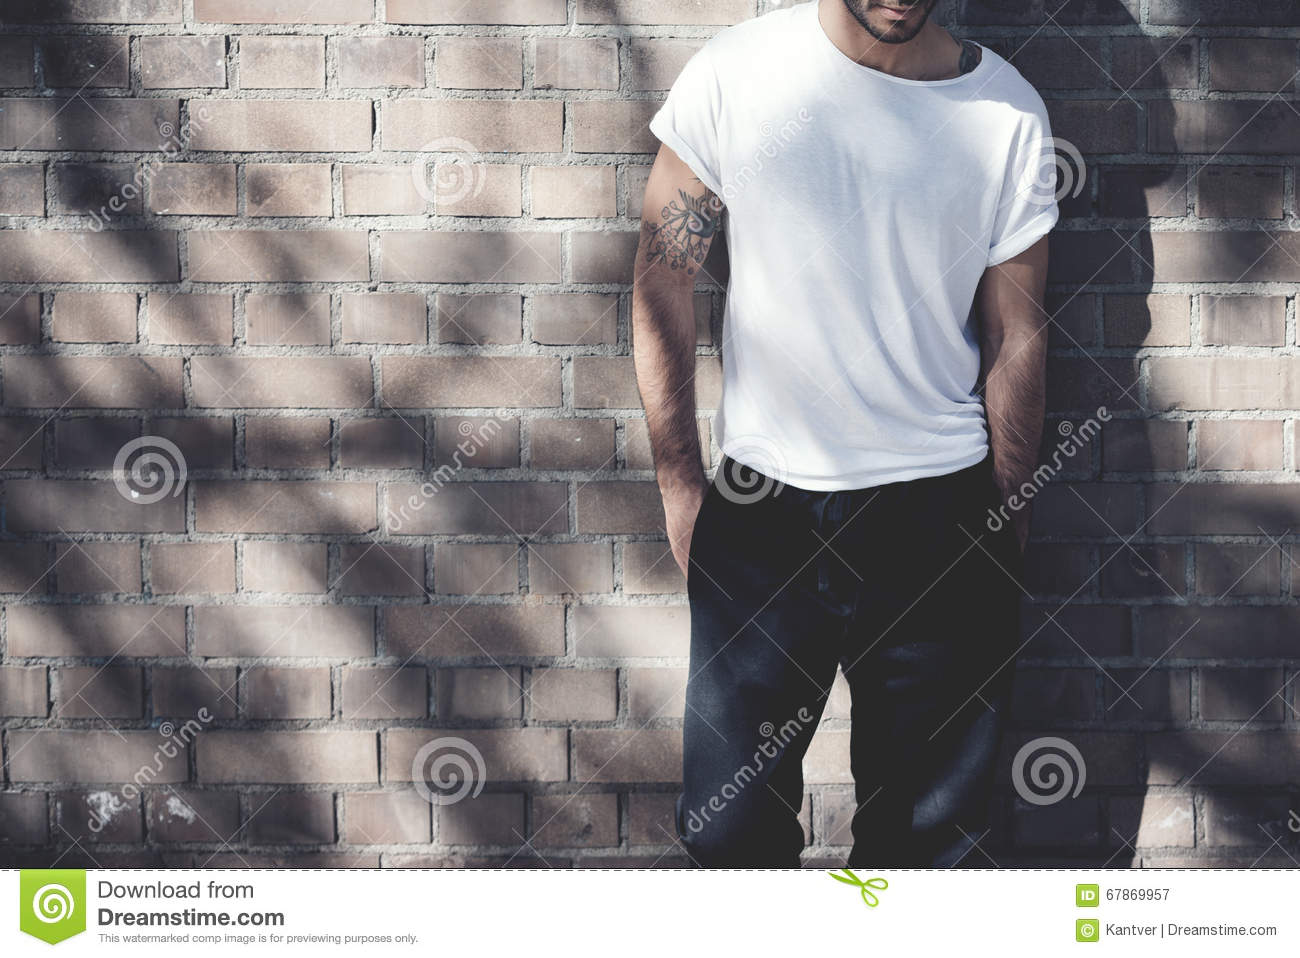 Plain wood table with hipster brick wall background stock photo - Photo Bearded Man With Tattoo Wearing Blank White Tshirt And Black Jeans Bricks Wall Background